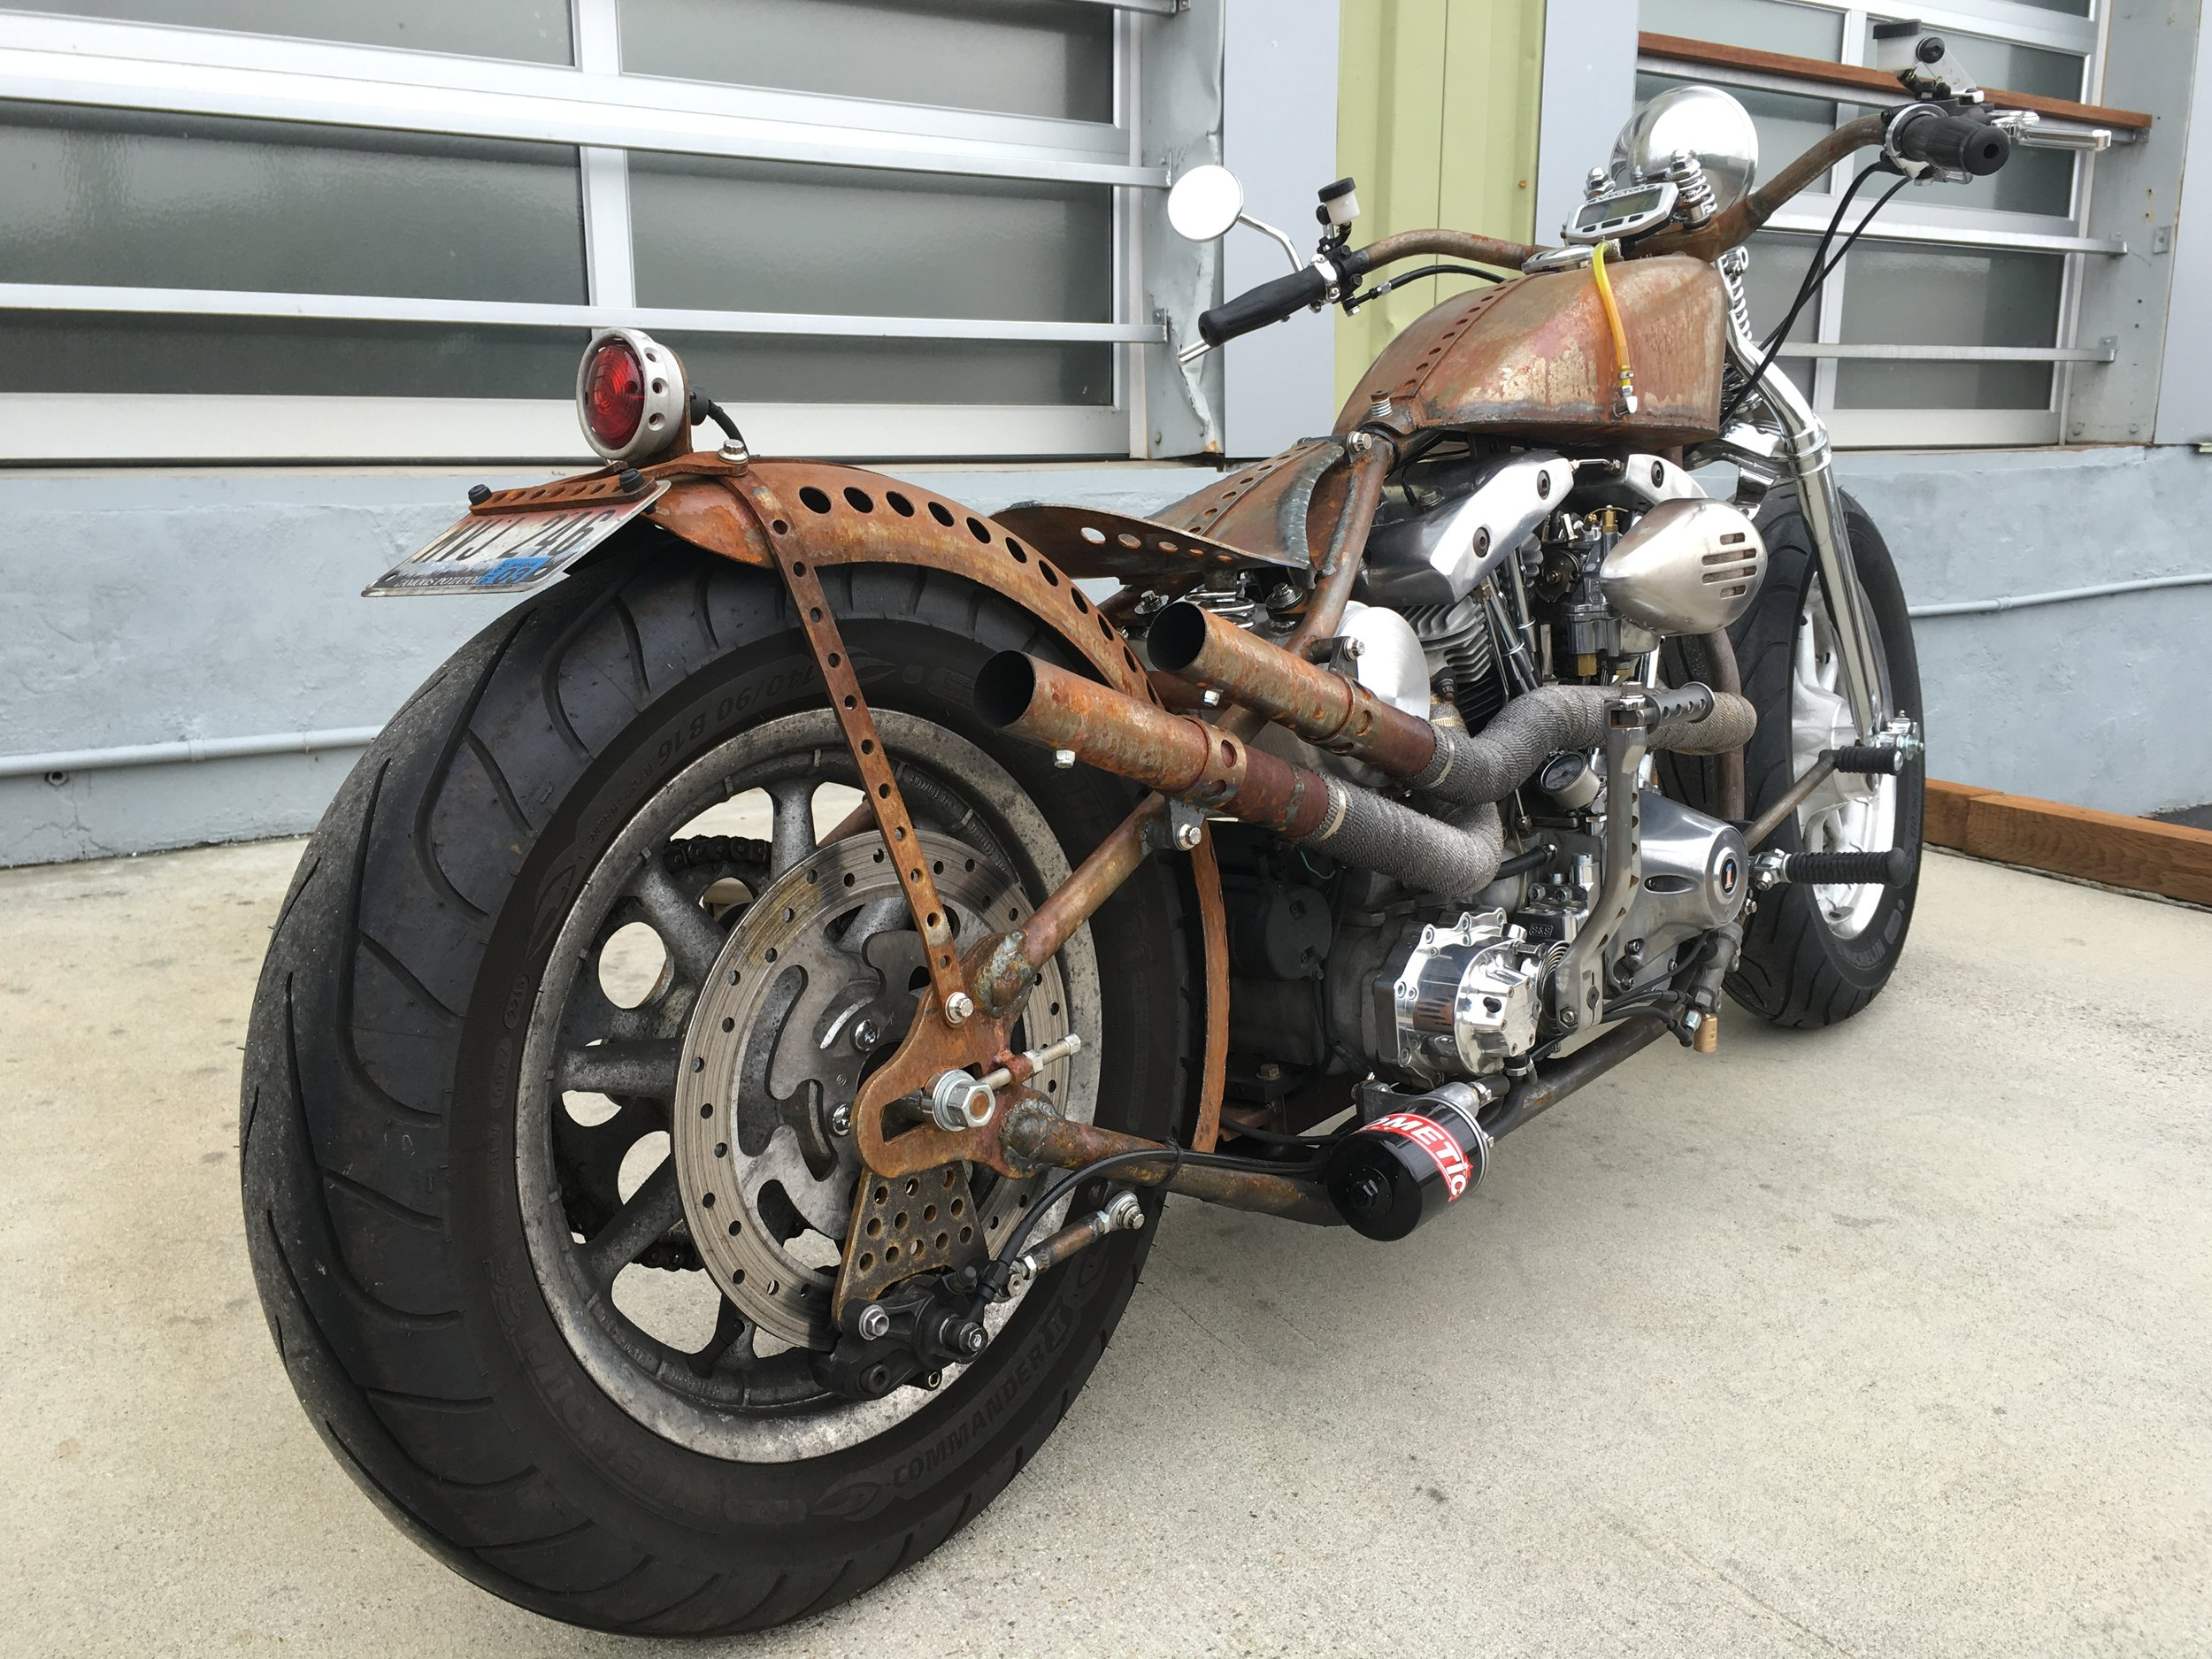 HAND BUILT FENDER STRUT, BRAKE MOUNT AND BRACKET, EXHAUST, SEAT AND HANDLEBARS BY TODD APPLE